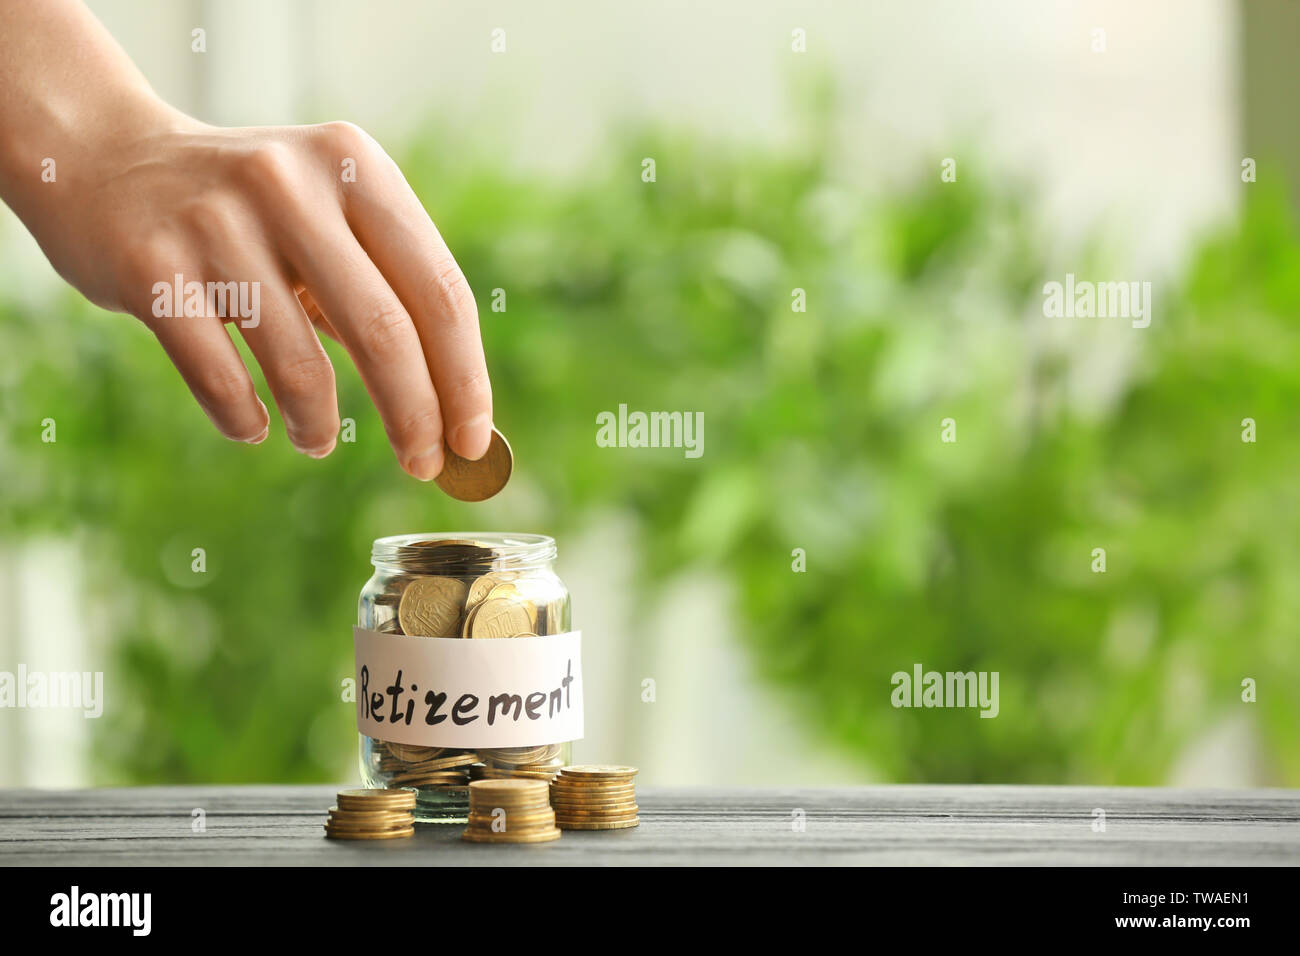 Hand putting coin into glass jar against blurred background. Pension planning concept - Stock Image